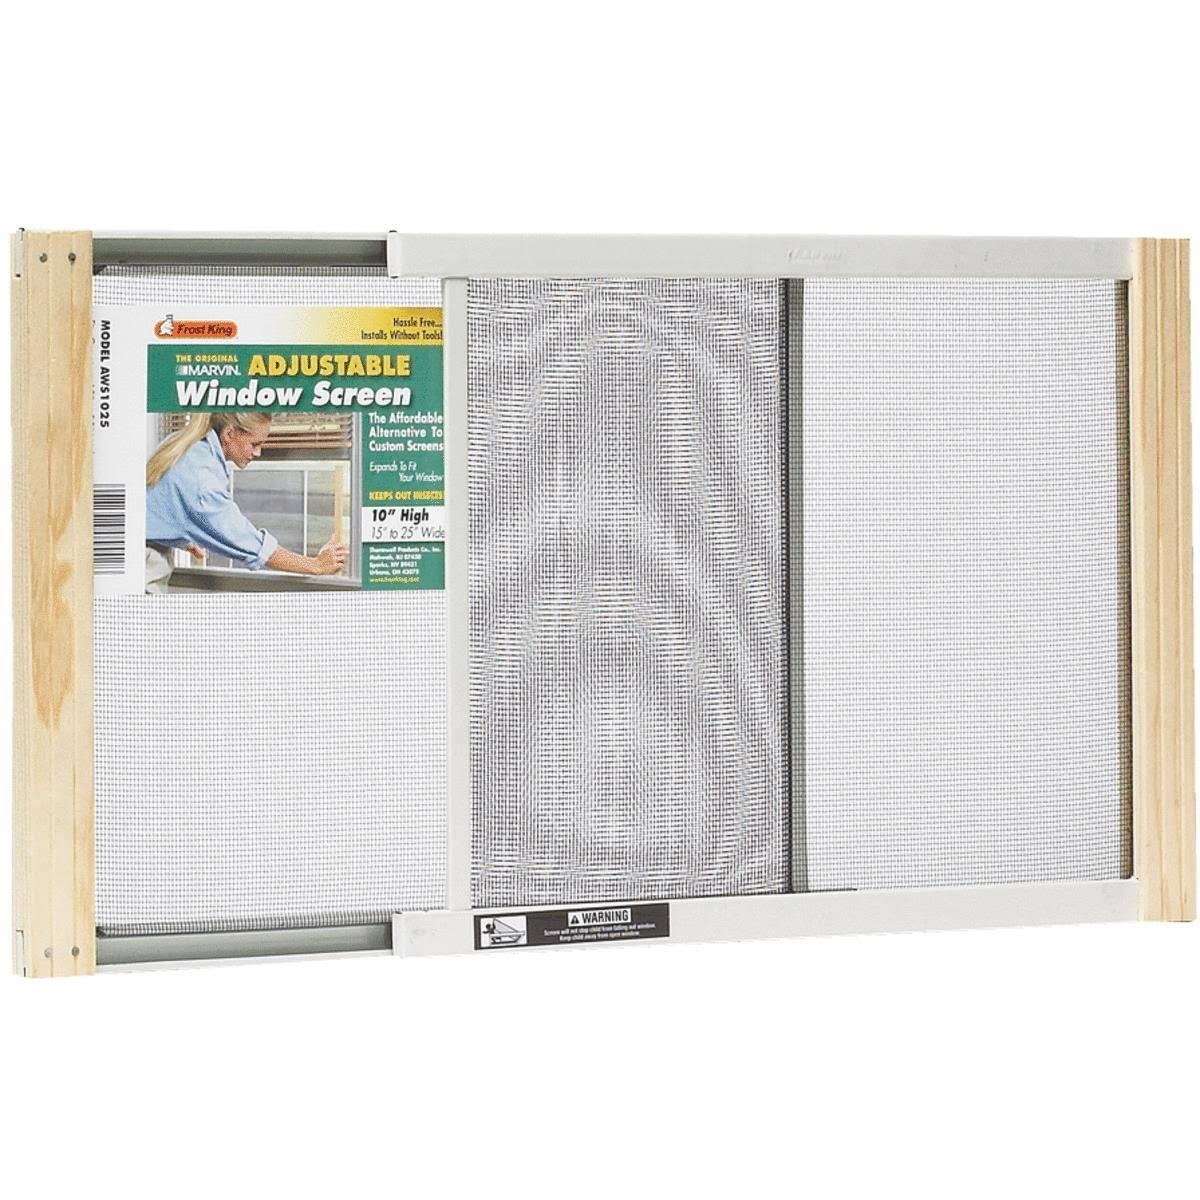 "Frost King Adjustable Window Screens - 10"" x 15-25"""